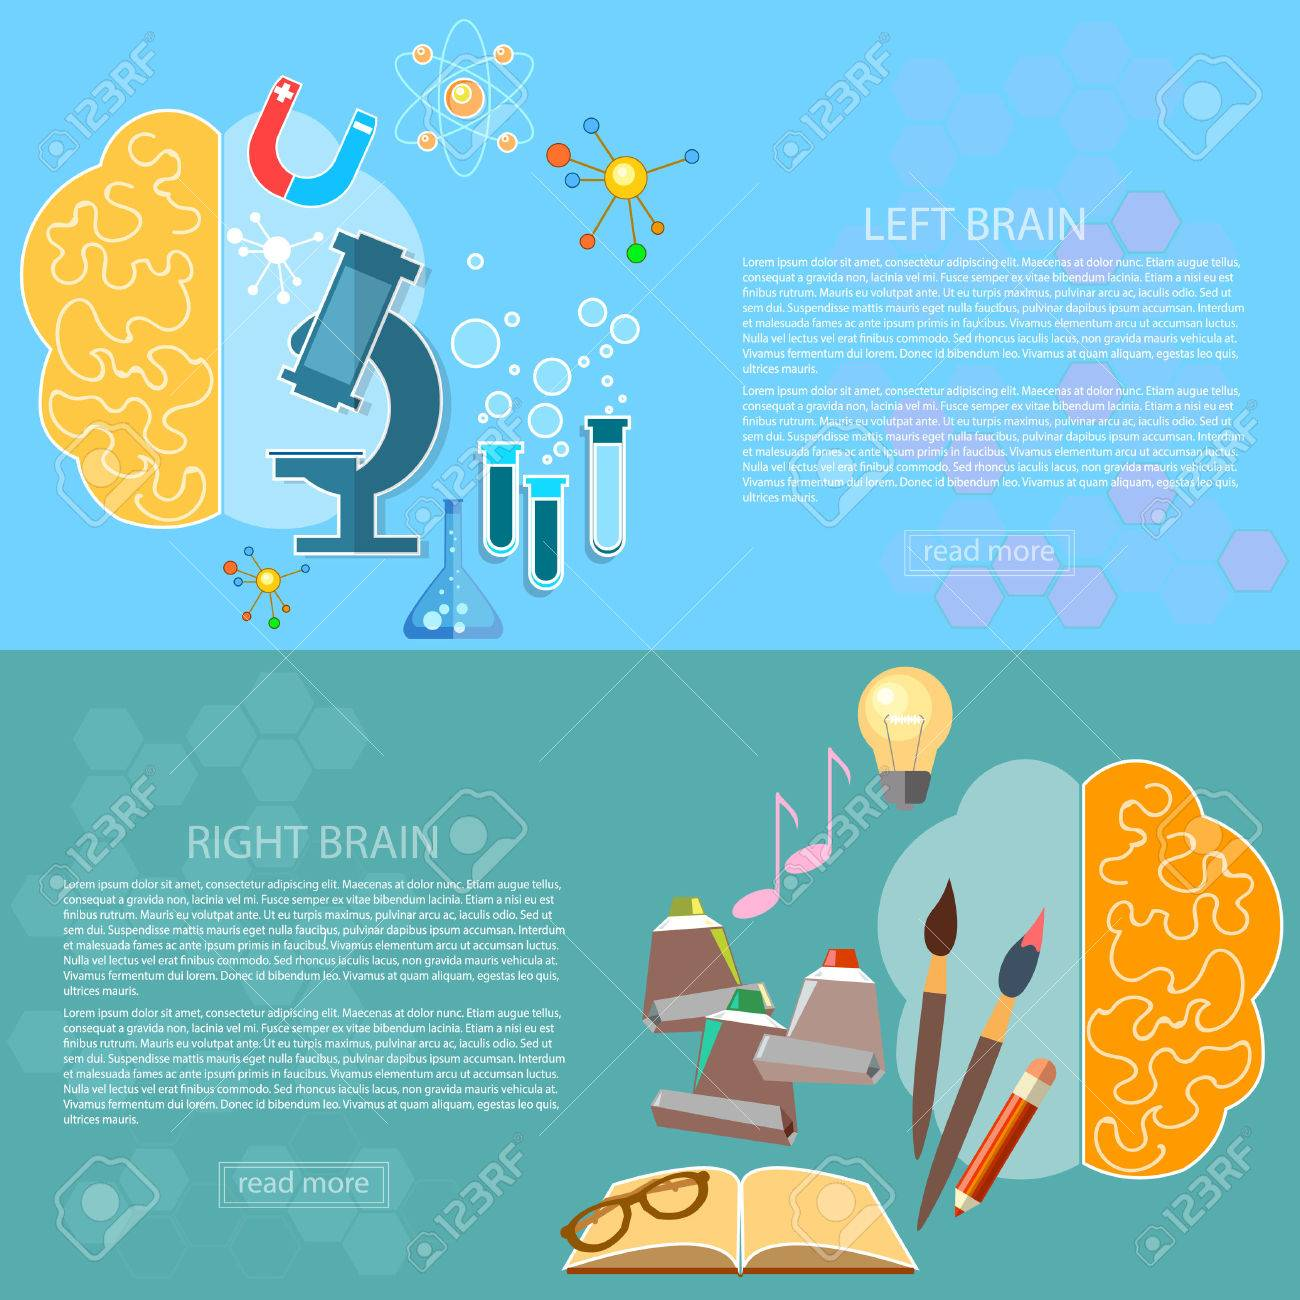 Left And Right Brain Art Creativity Of Logic Analysis Creative Concept Vector Banners Stock